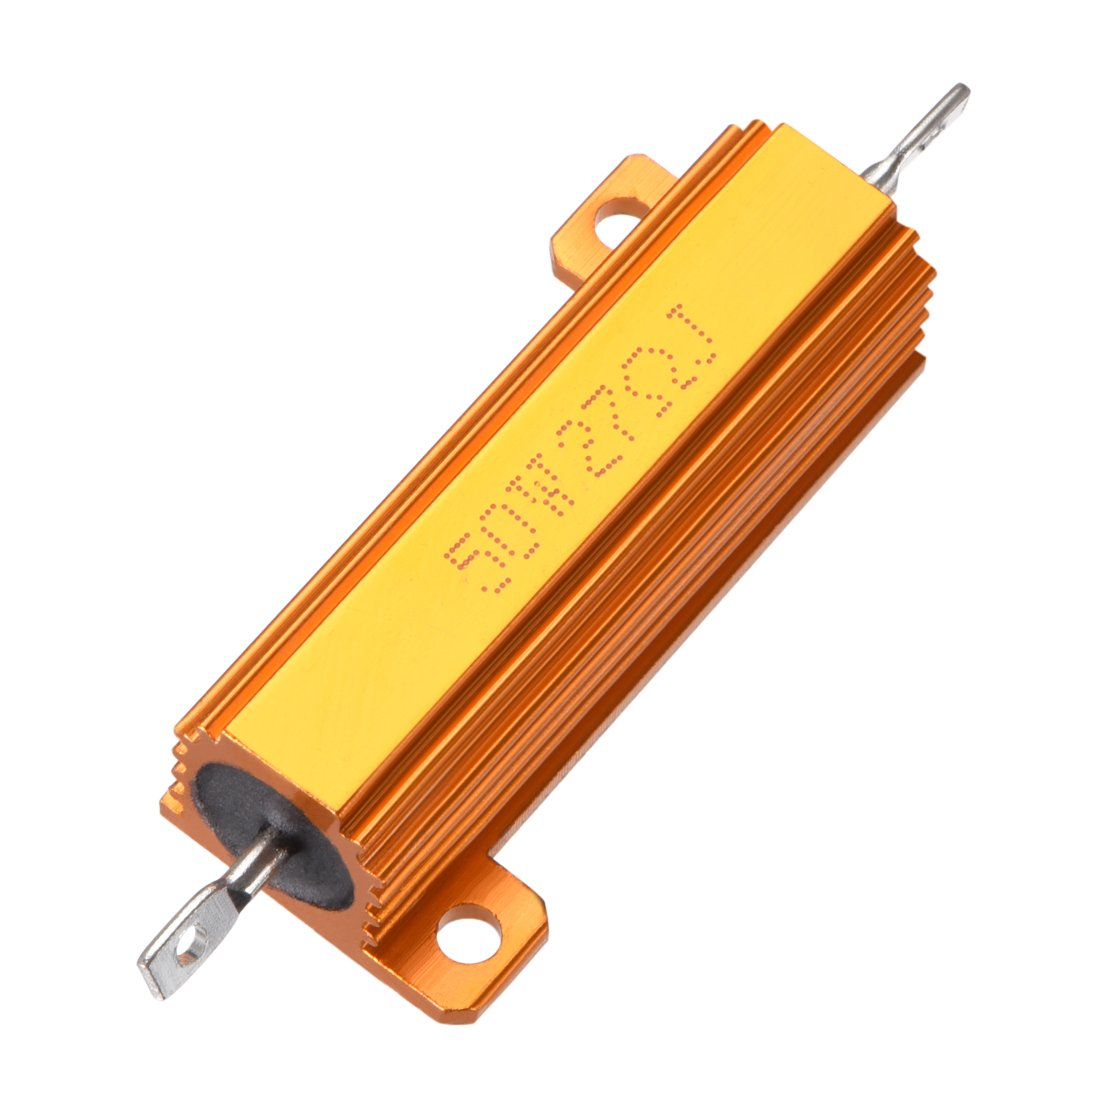 sourcingmap 50W 27 Ohm 5/% Aluminum Housing Resistor Screw Tap Chassis Mounted Aluminum Case Wirewound Resistor Load Resistors Gold Tone 1pcs